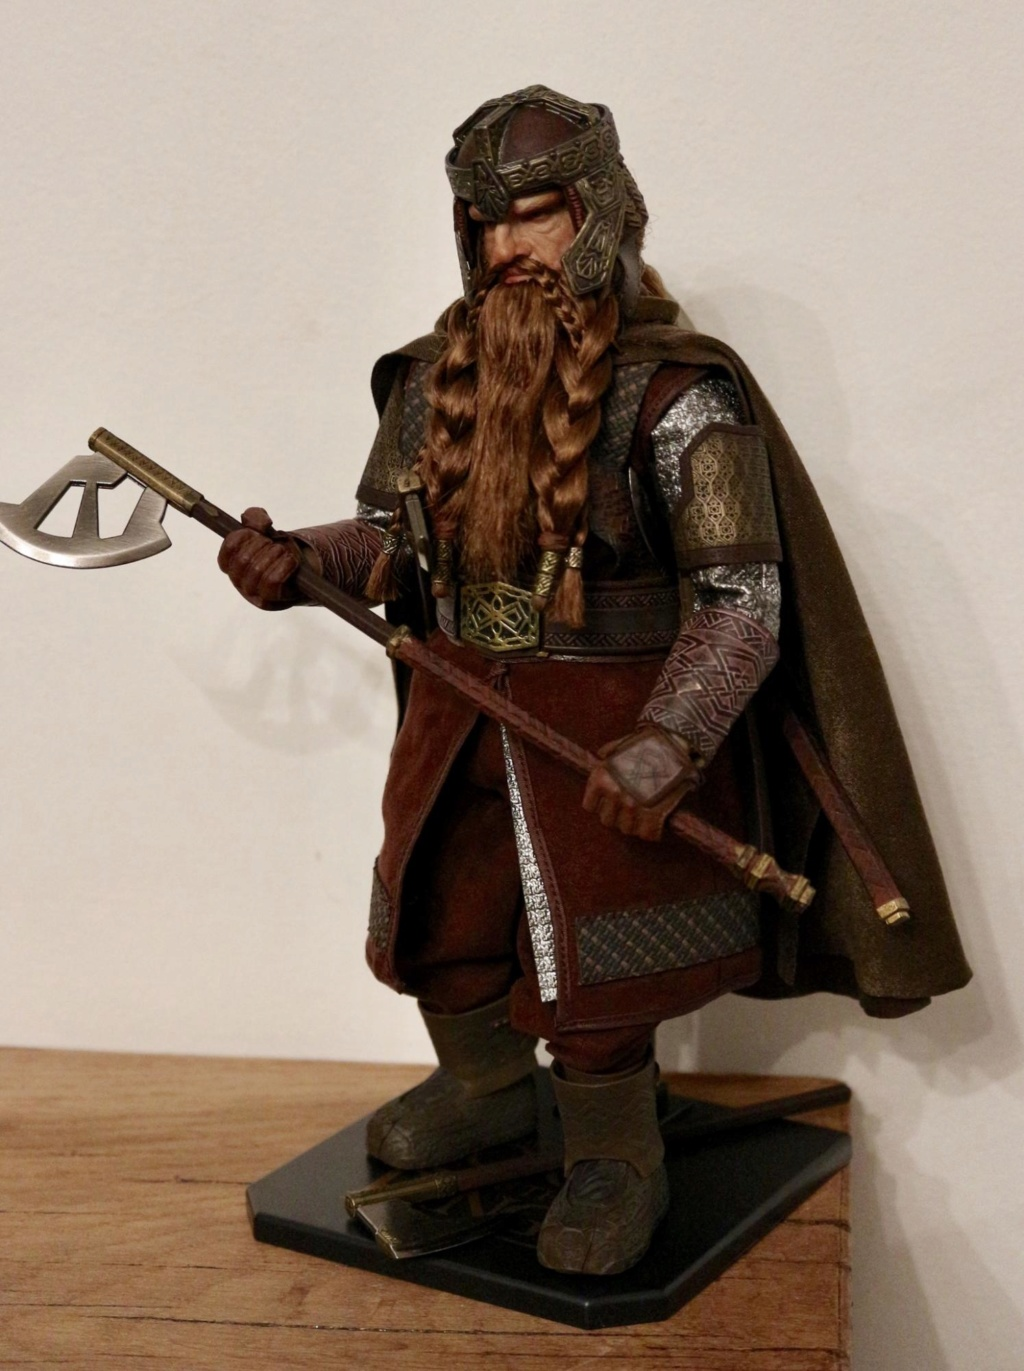 NEW PRODUCT: Asmus Toys The Lord of the Rings Series: Gimli (LOTR018) Timeme15